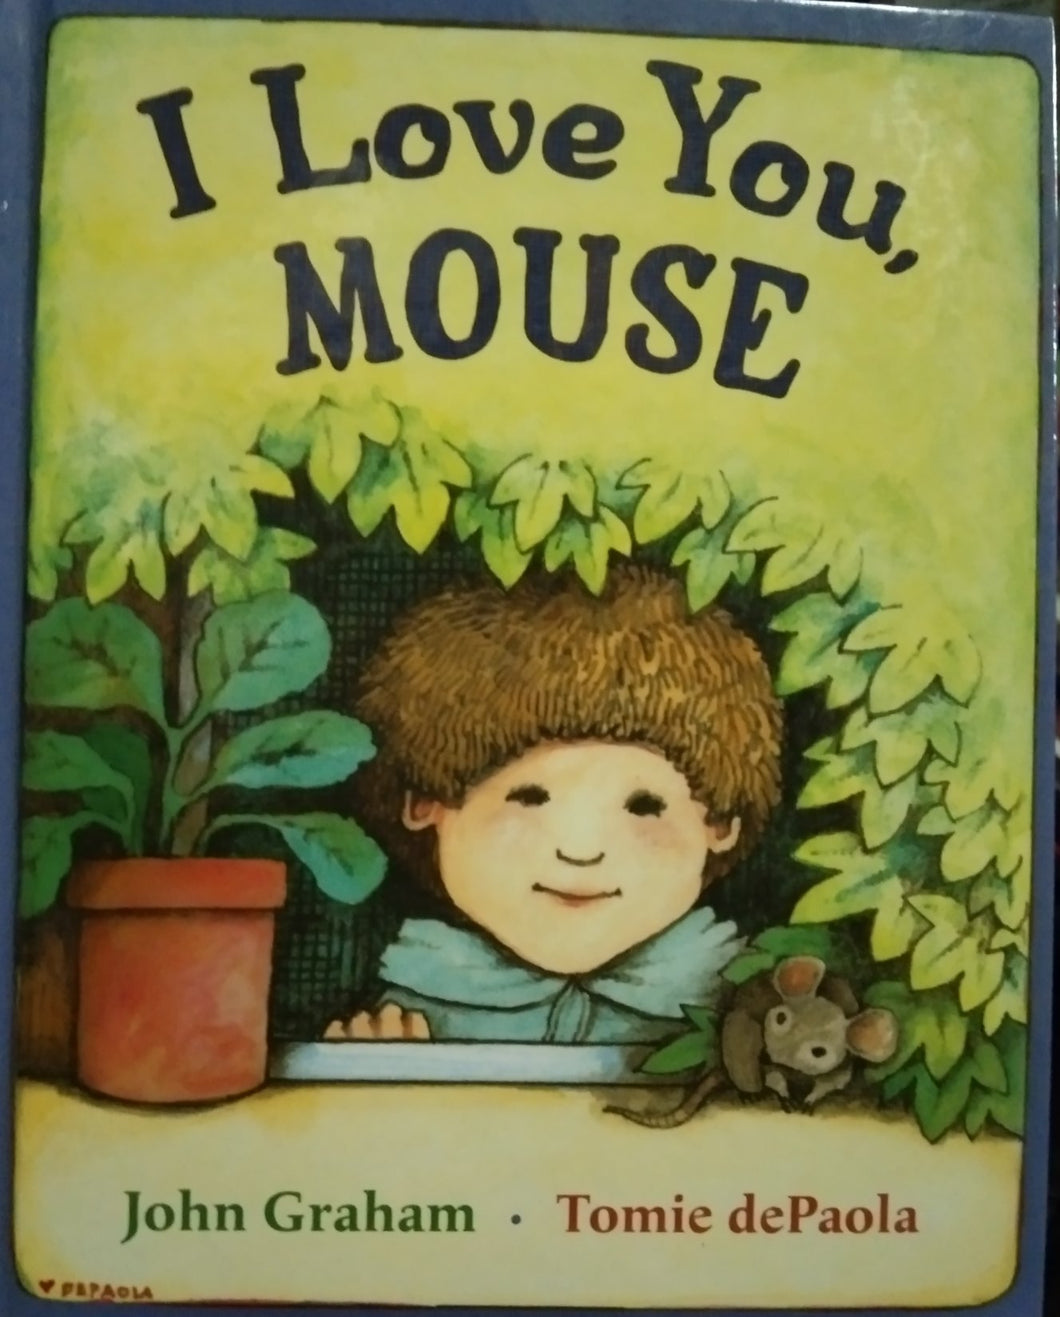 I love you mouse by graham